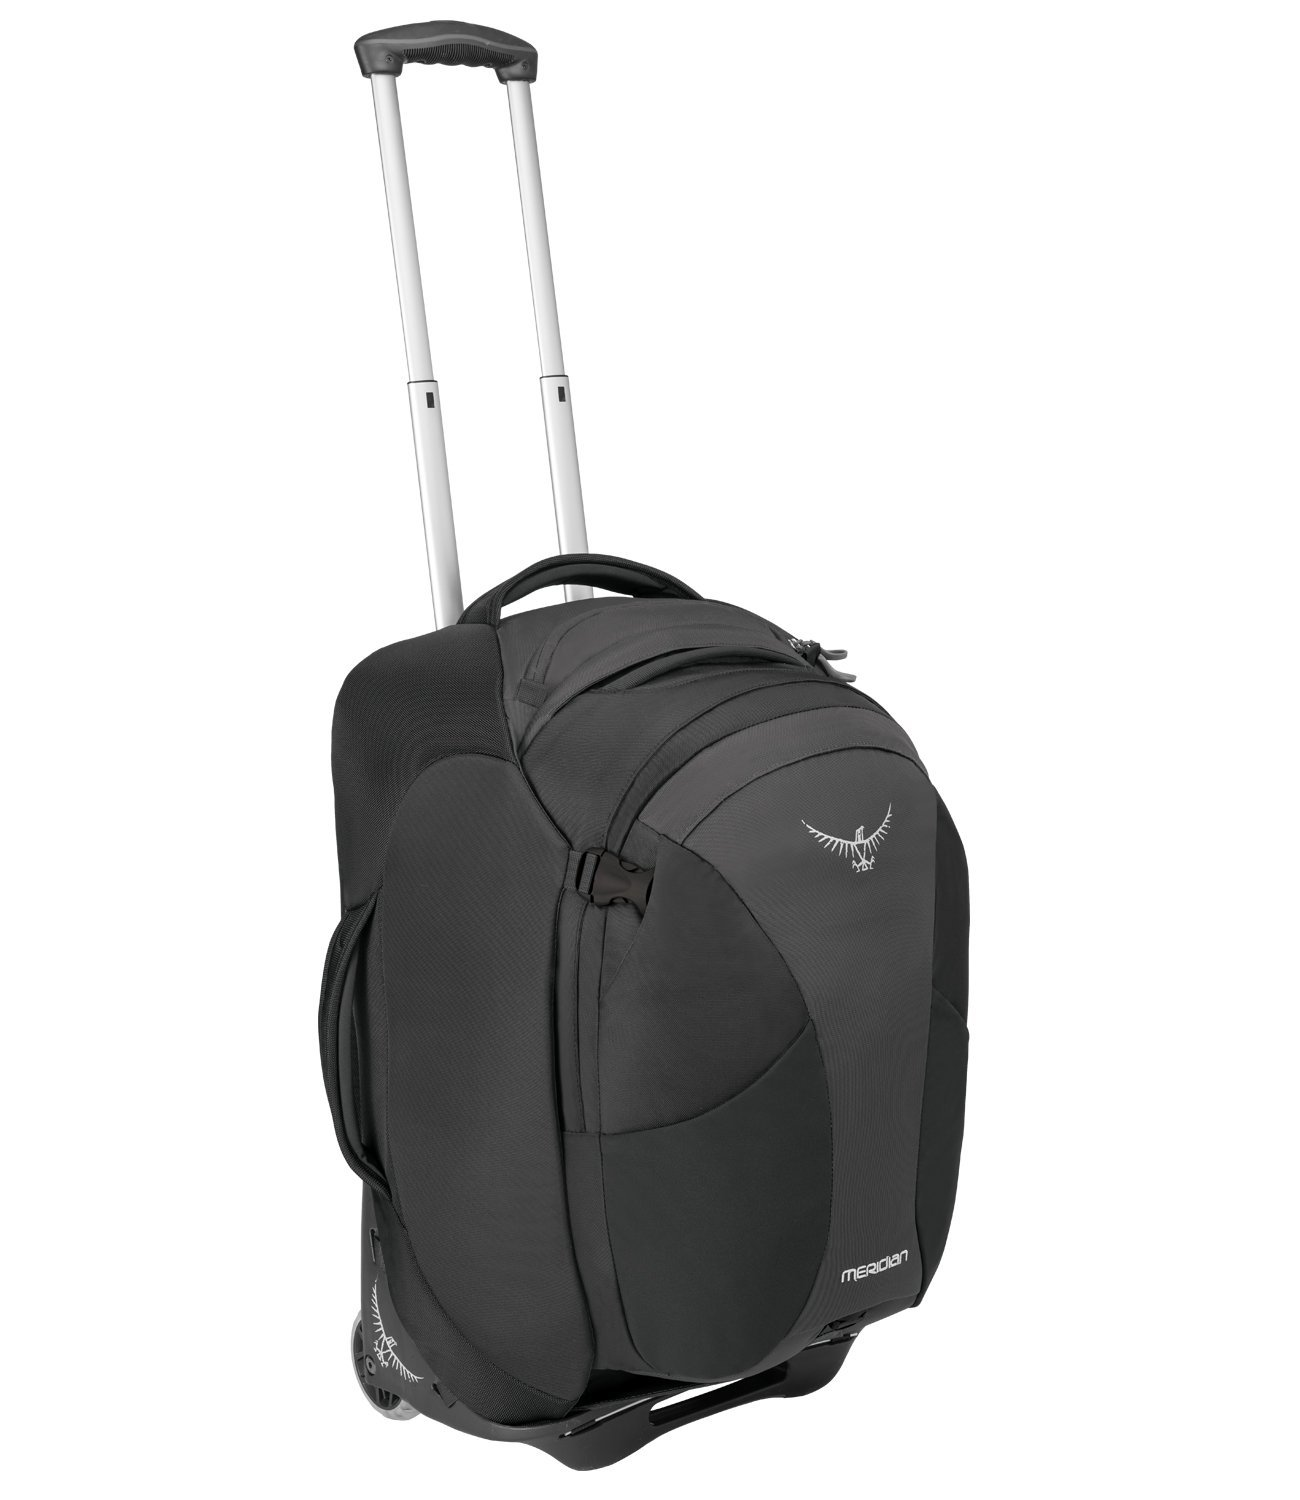 Osprey Meridian Wheeled Convertible Luggage